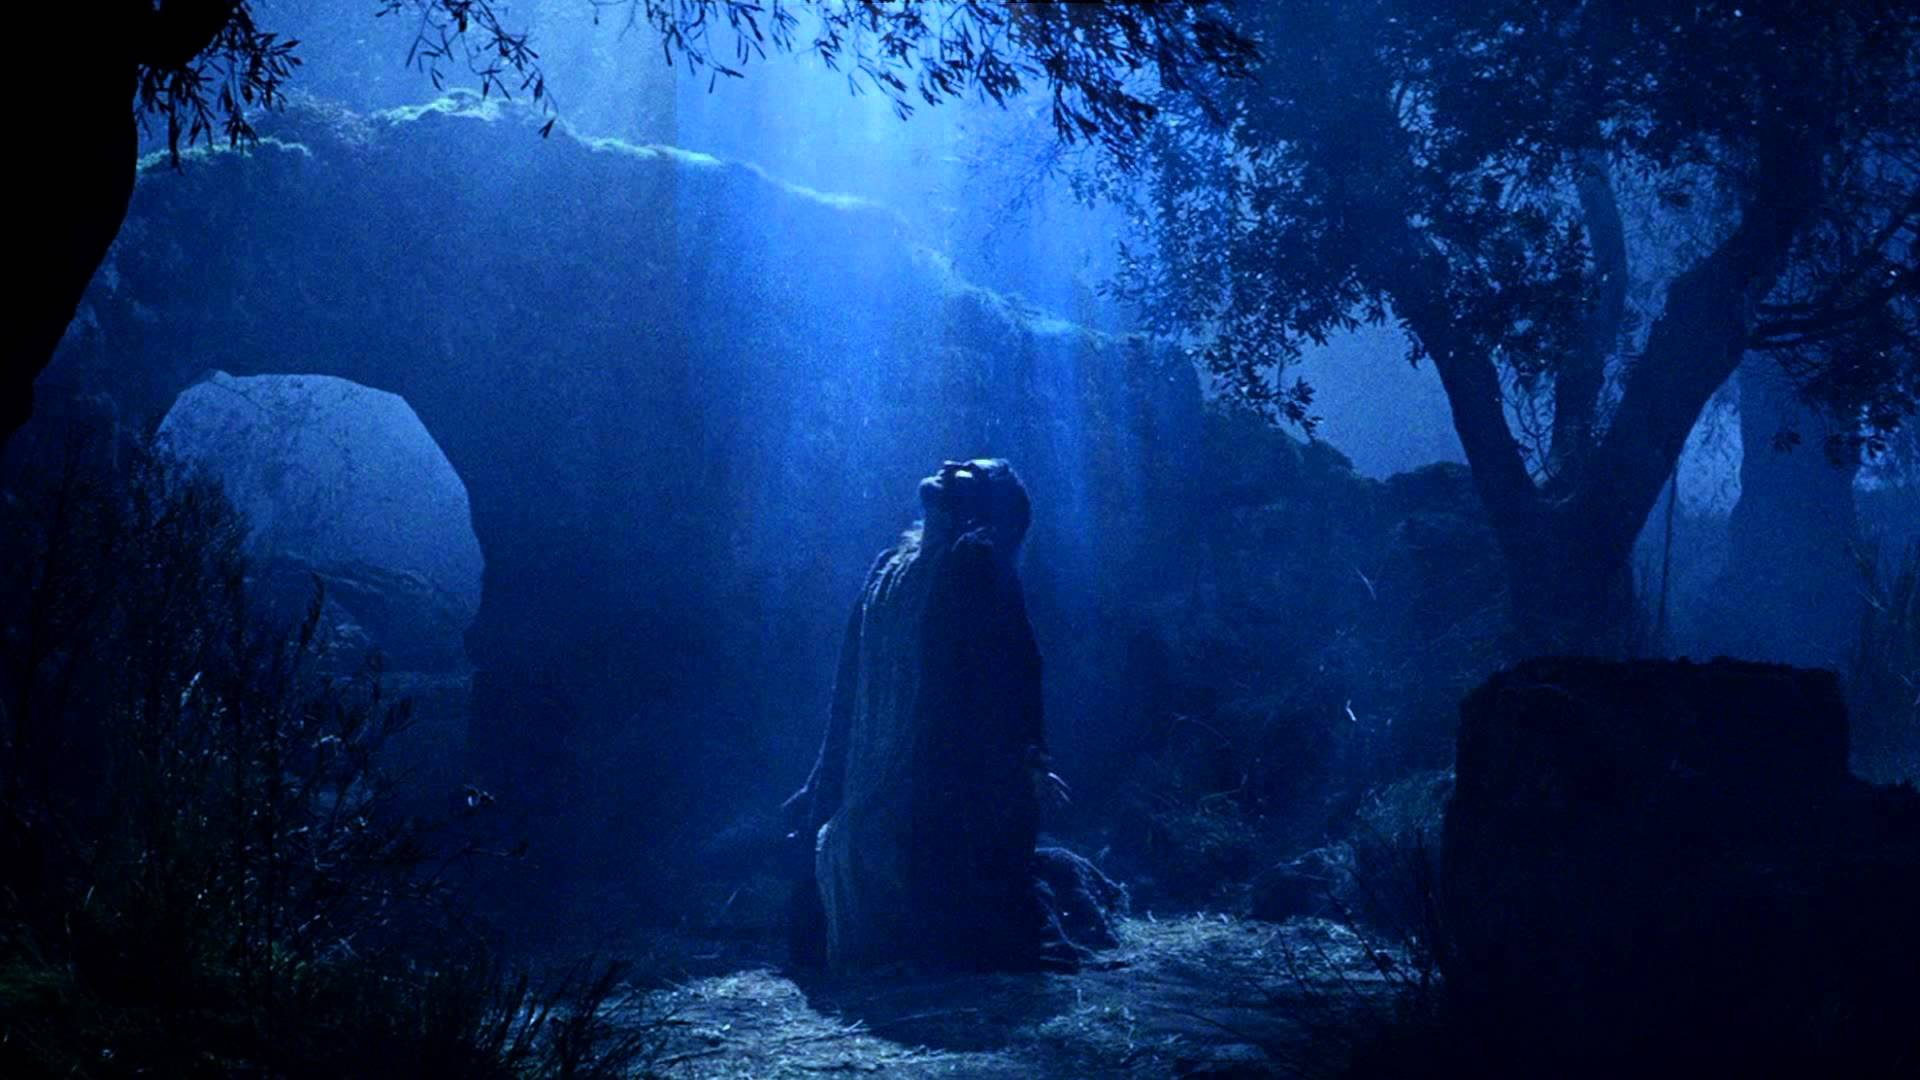 The Agony of Gethsemane The Most Amazing and Terrifying Scene in